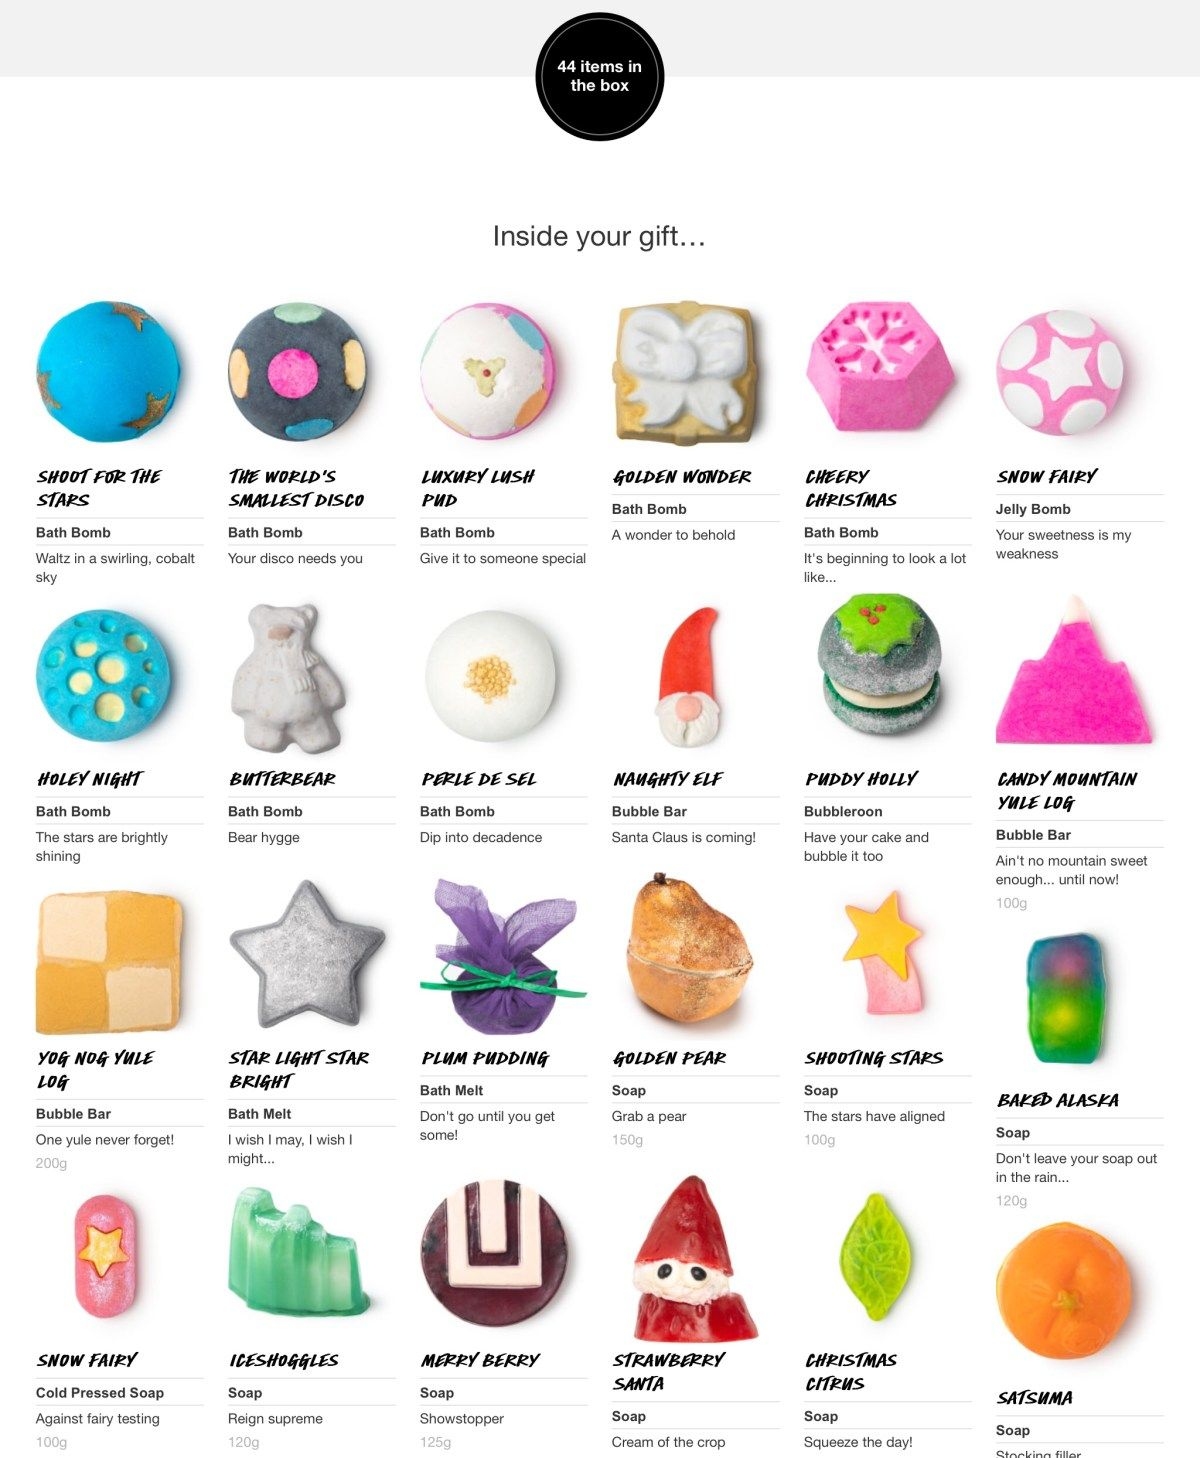 Top 5 Lush Christmas Products Lush Christmas Lush Products